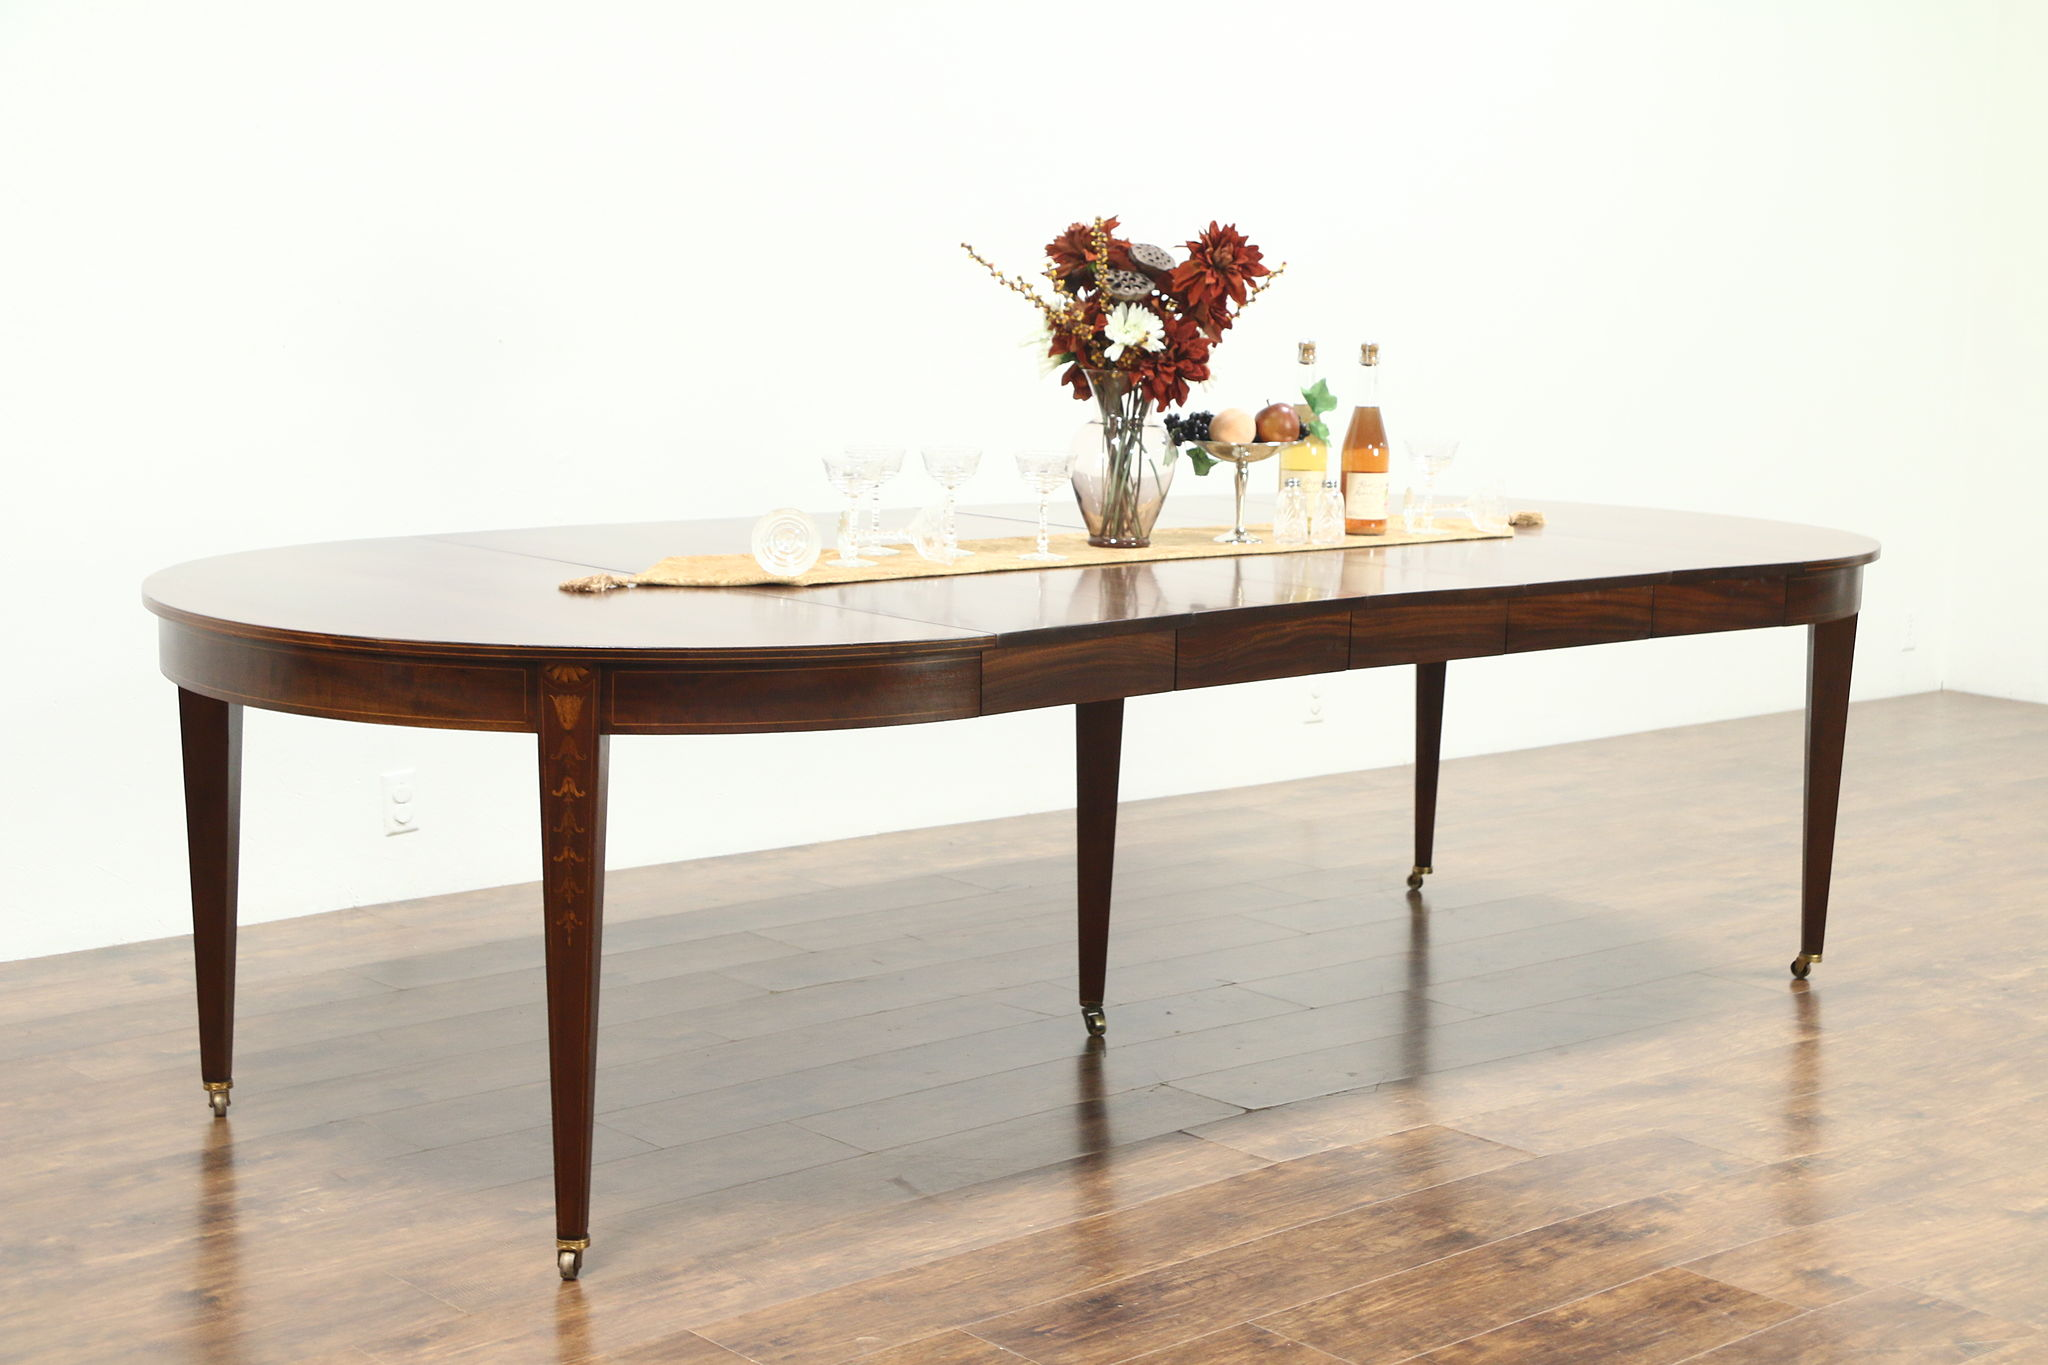 Picture of: Sold Hepplewhite Traditional Round Antique Mahogany Dining Table Extends 10 Harp Gallery Antiques Furniture